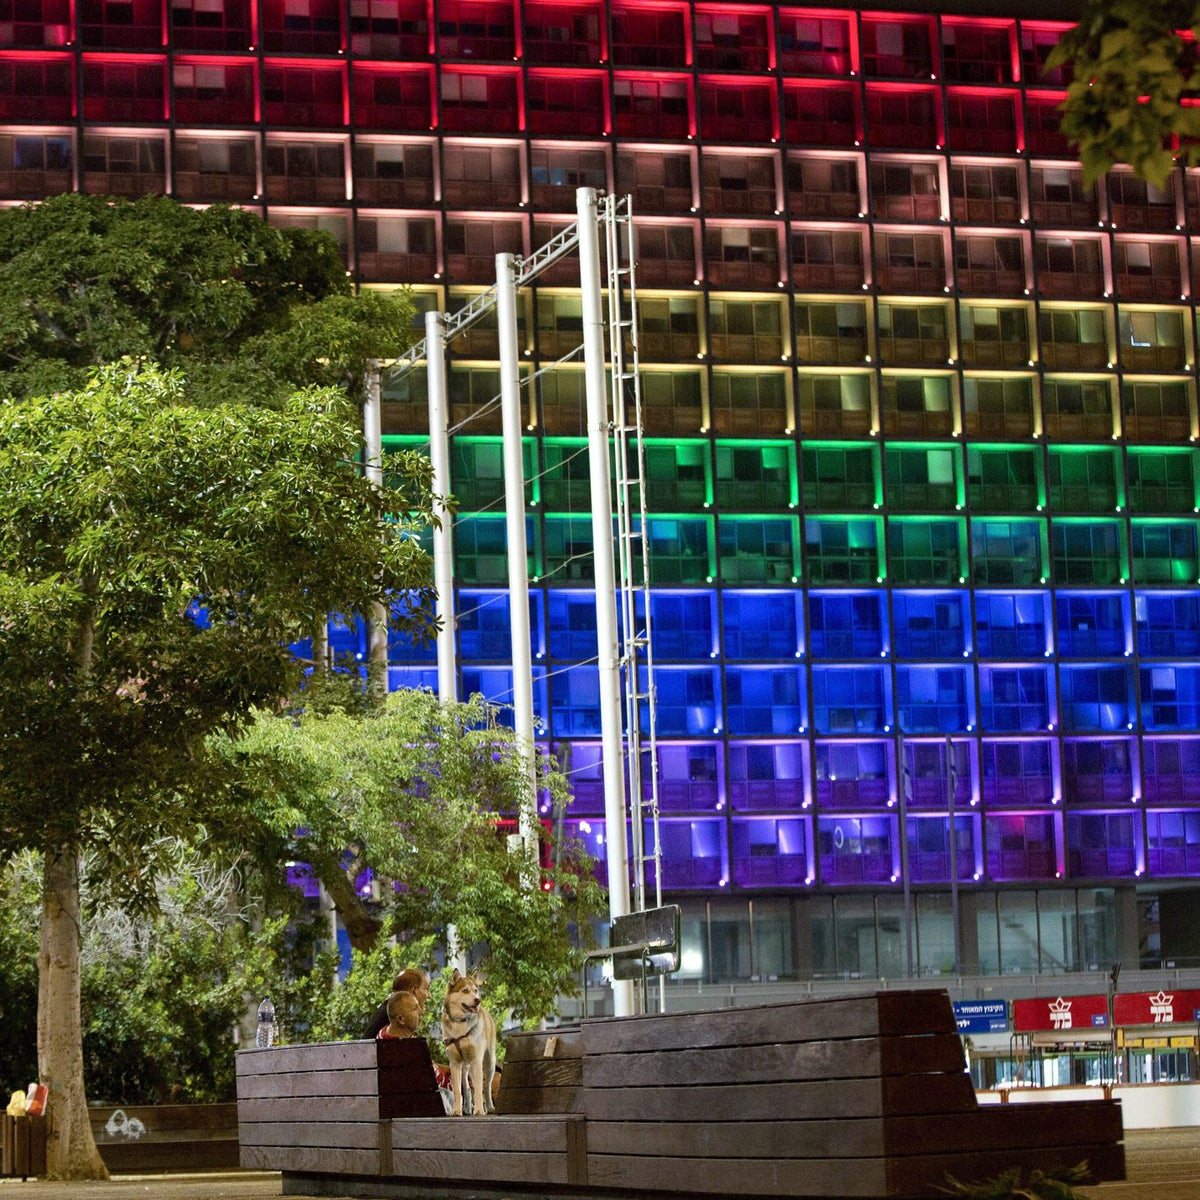 Tel-Aviv city hall lit up with rainbow flag colors in solidarity with Florida's shooting attack victims, in Tel Aviv, Israel, Sunday, June 12, 2016.